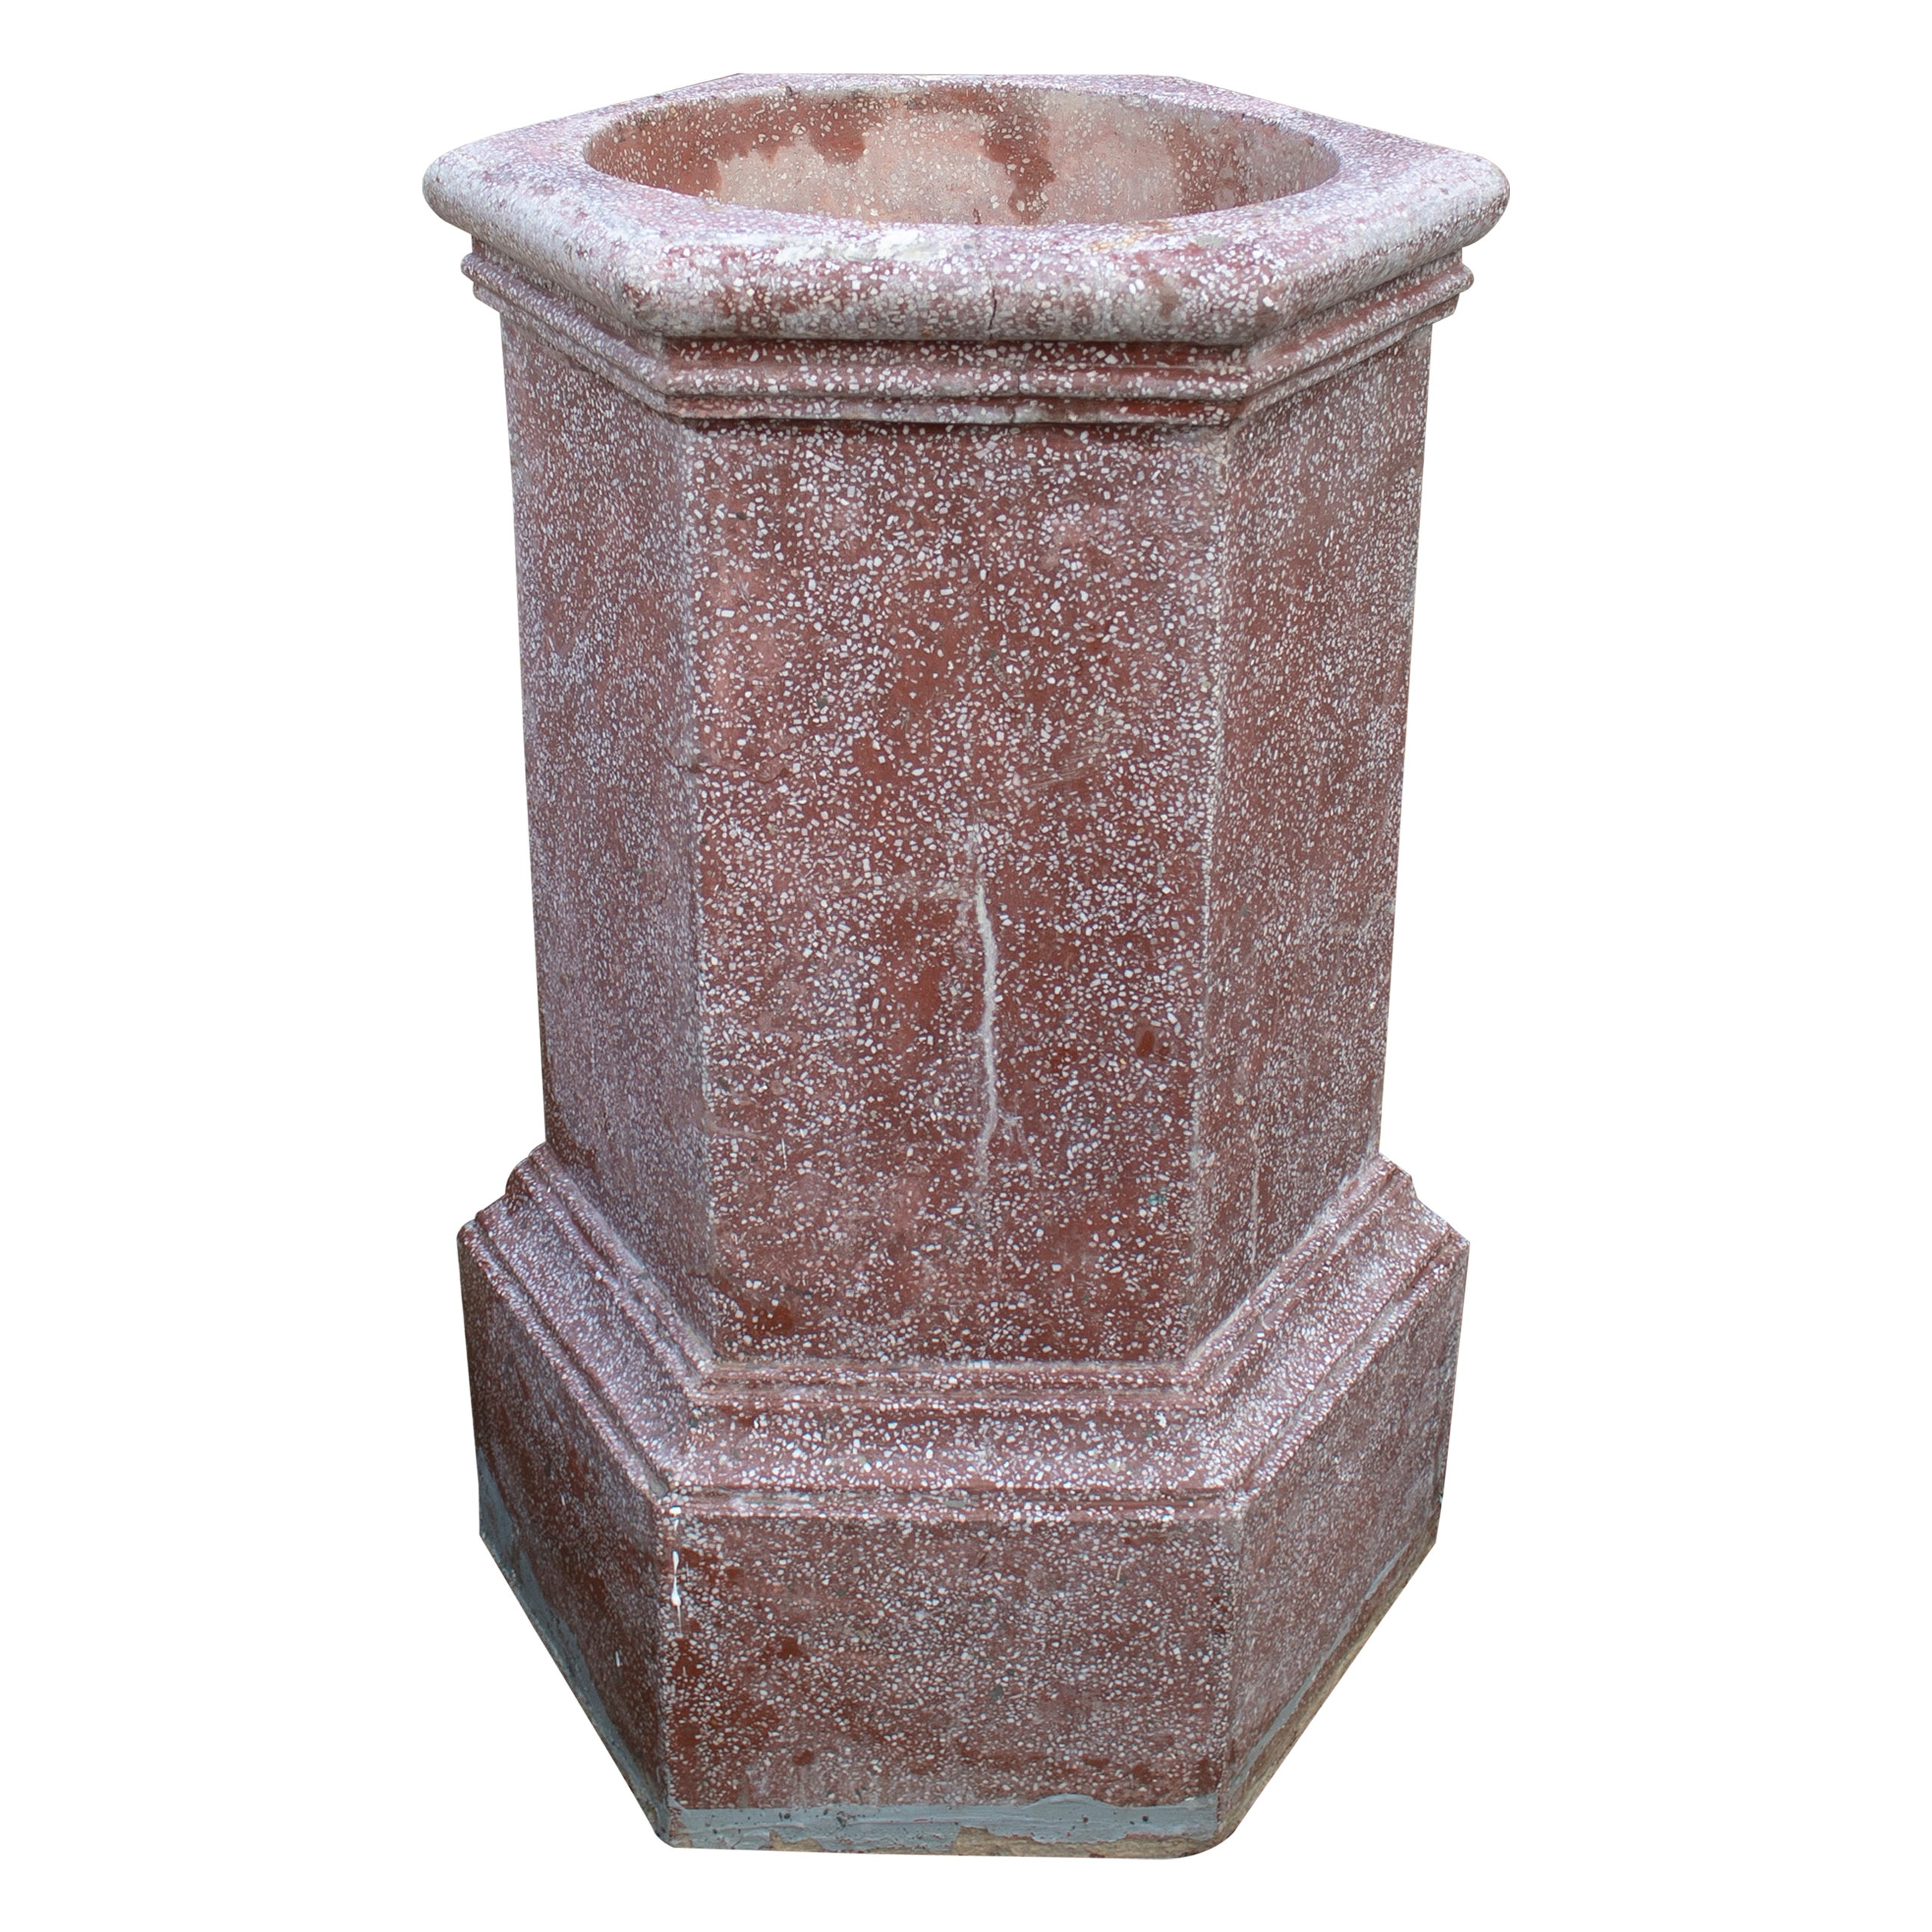 1950s Spanish Red Reconstituted Stone Wellhead